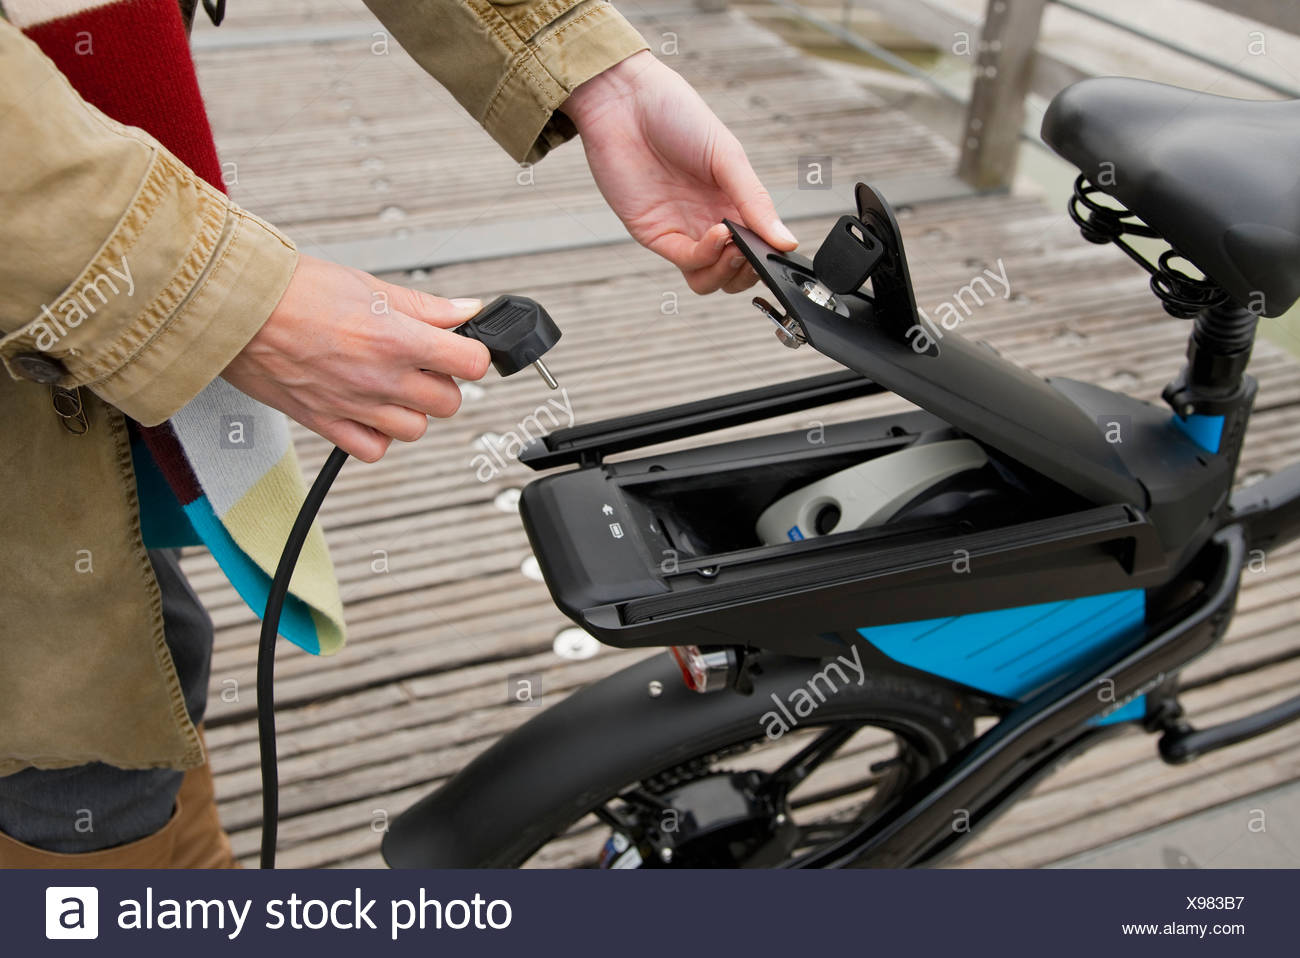 Woman charging electric bike outdoors - Stock Image